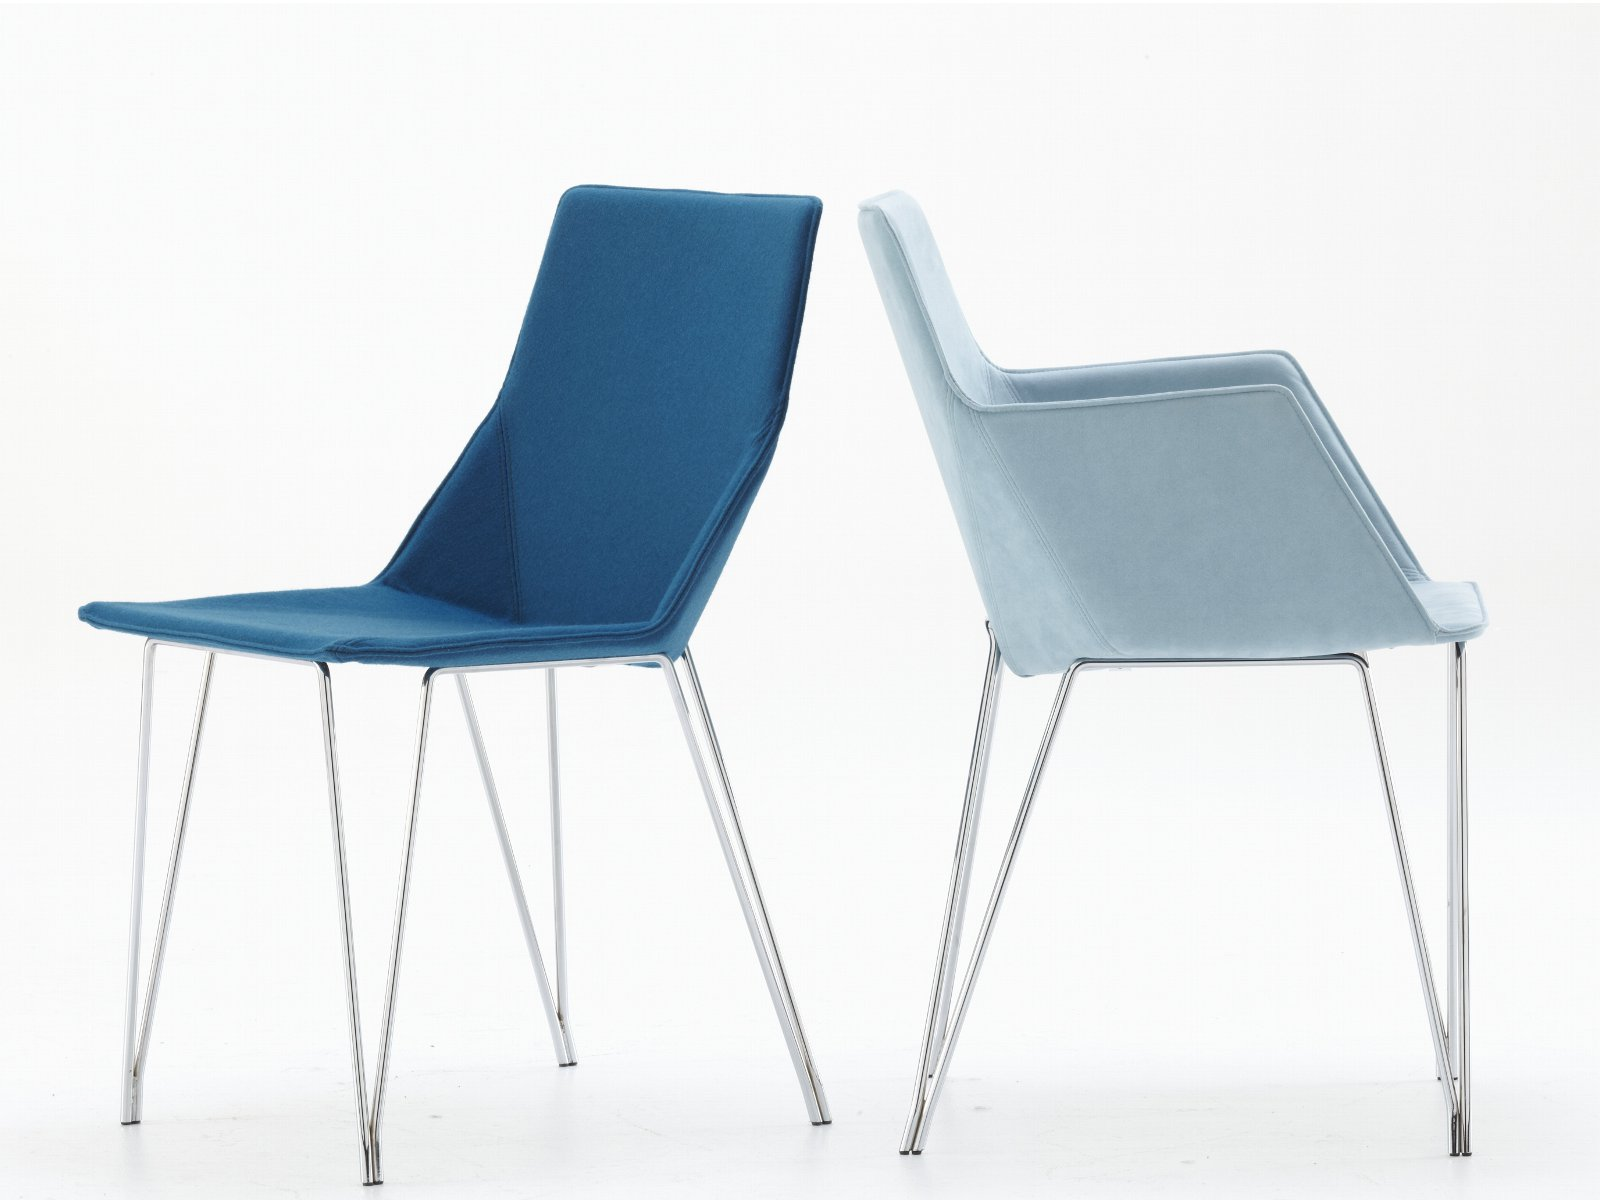 UPHOLSTERED CHAIR ELSA ELSA COLLECTION BY ROSET ITALIA ...